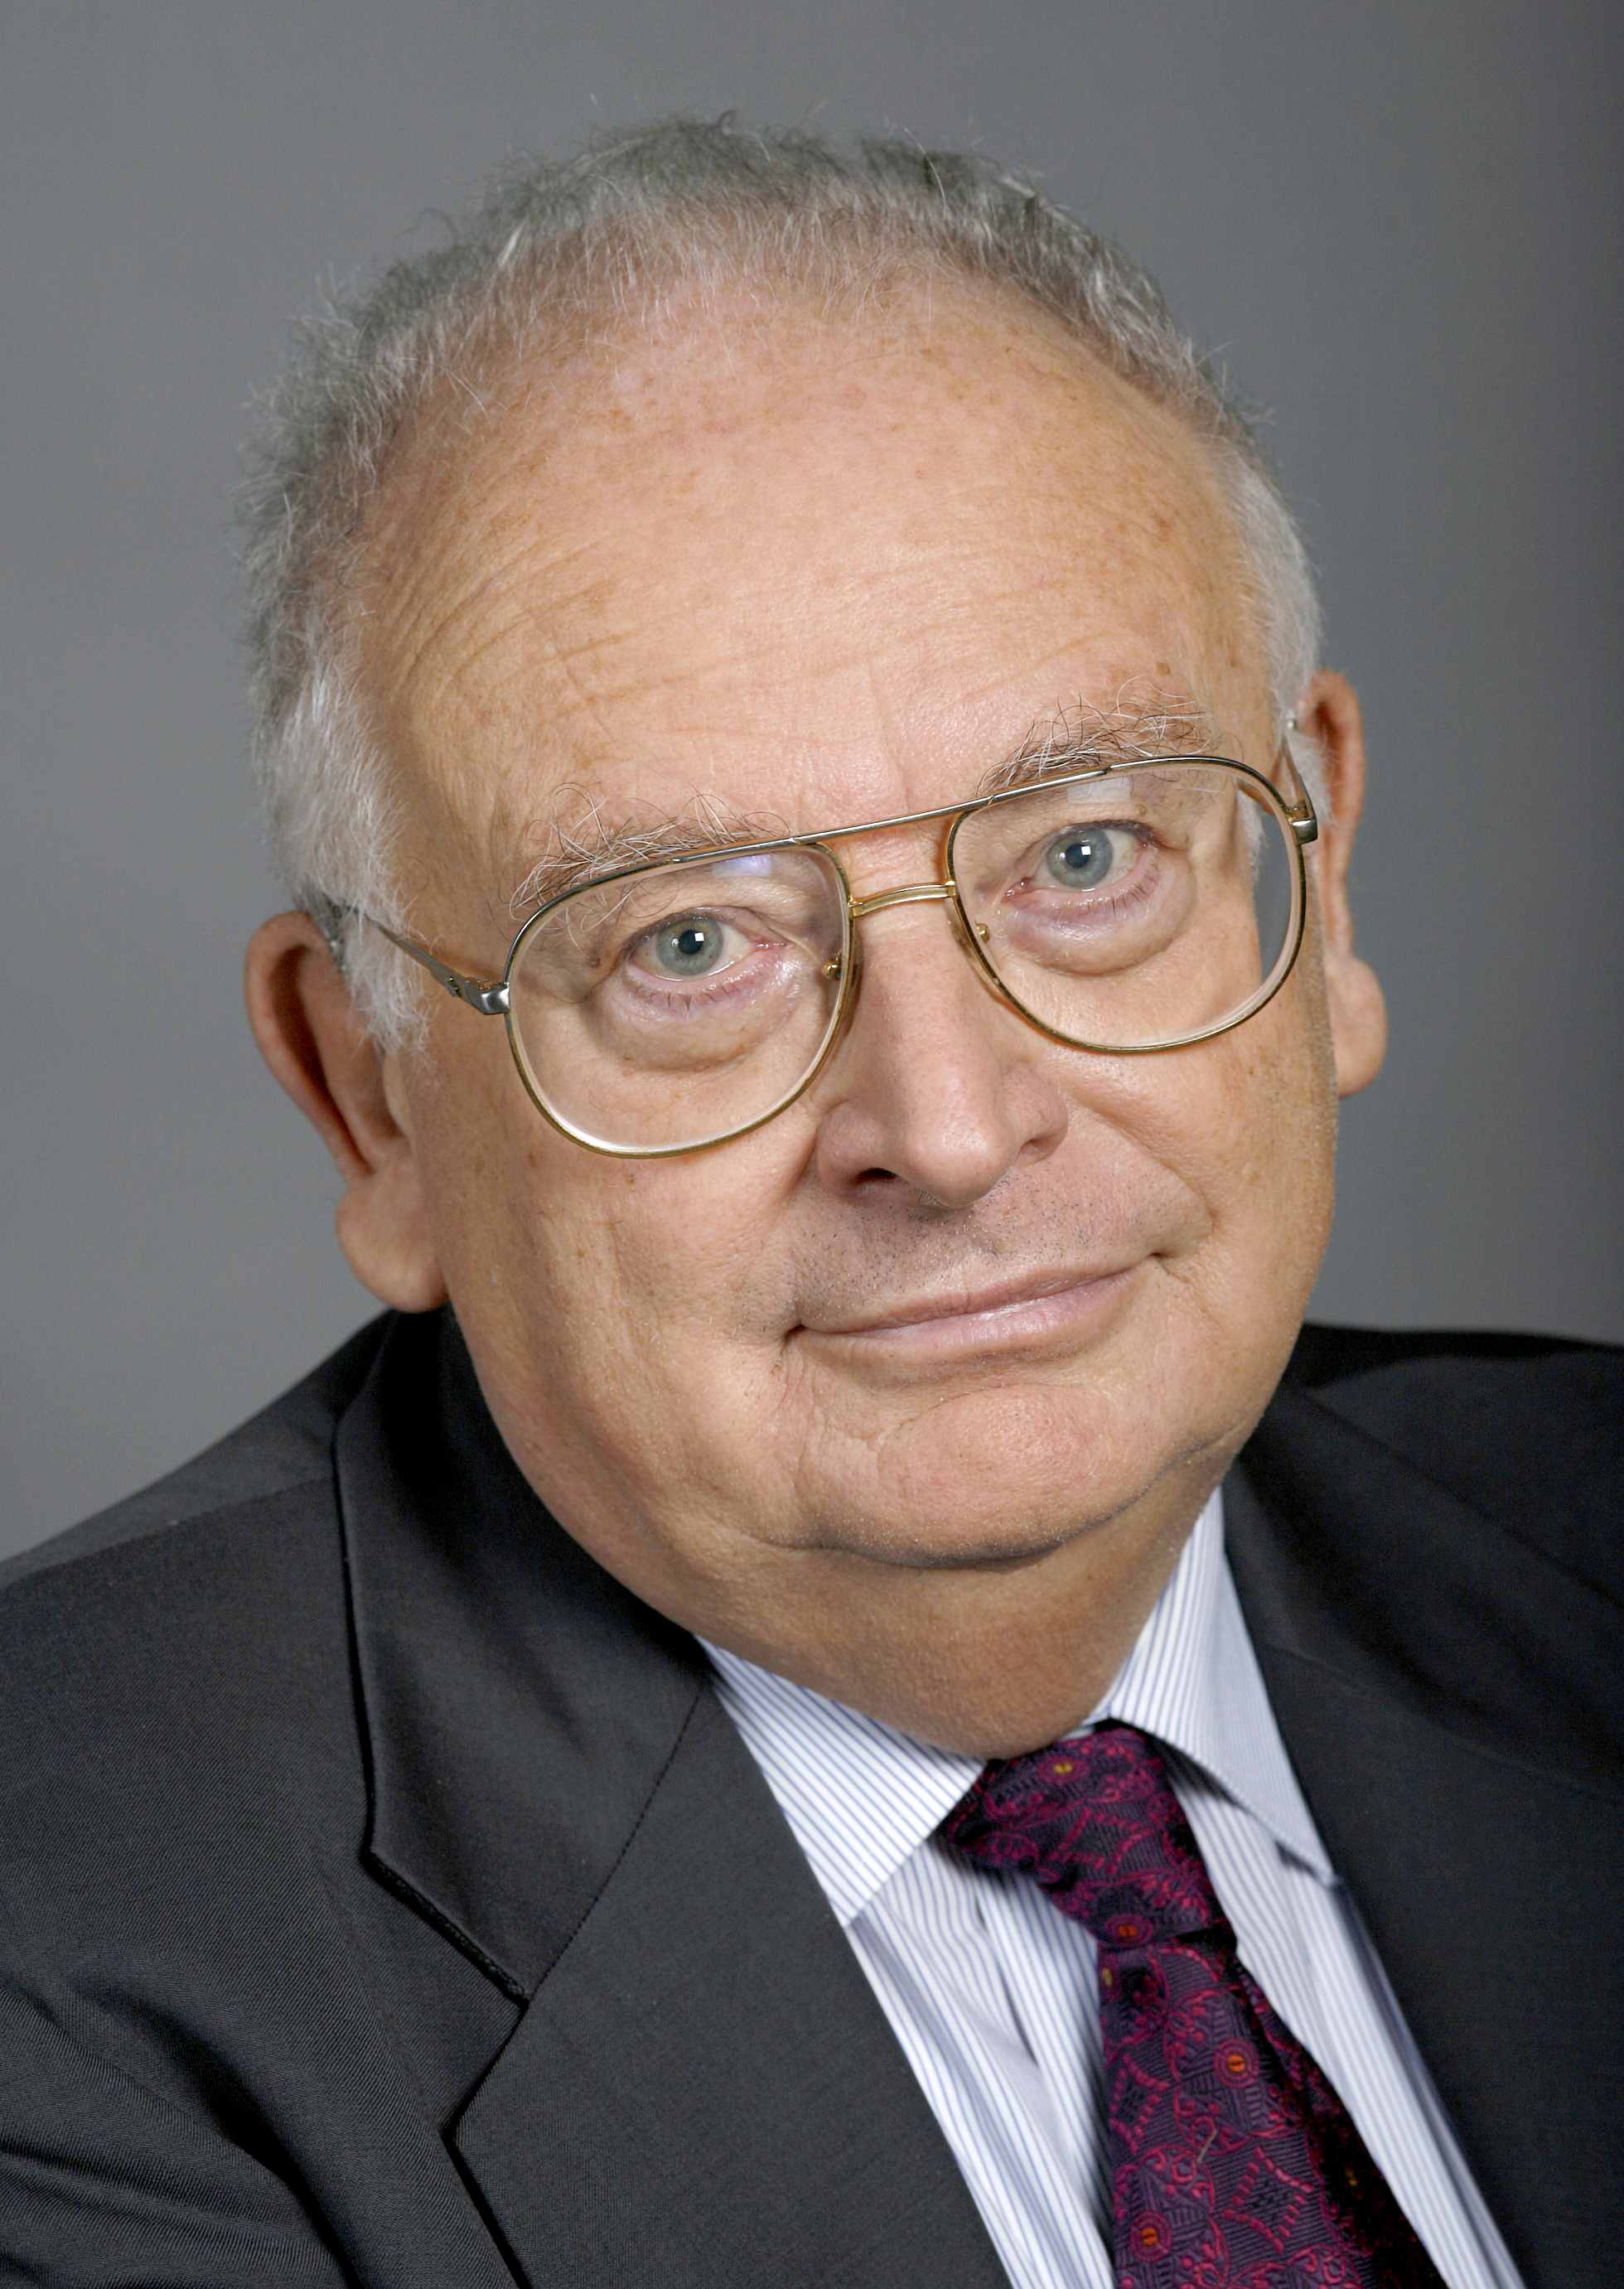 Jacques Neirynck Net Worth